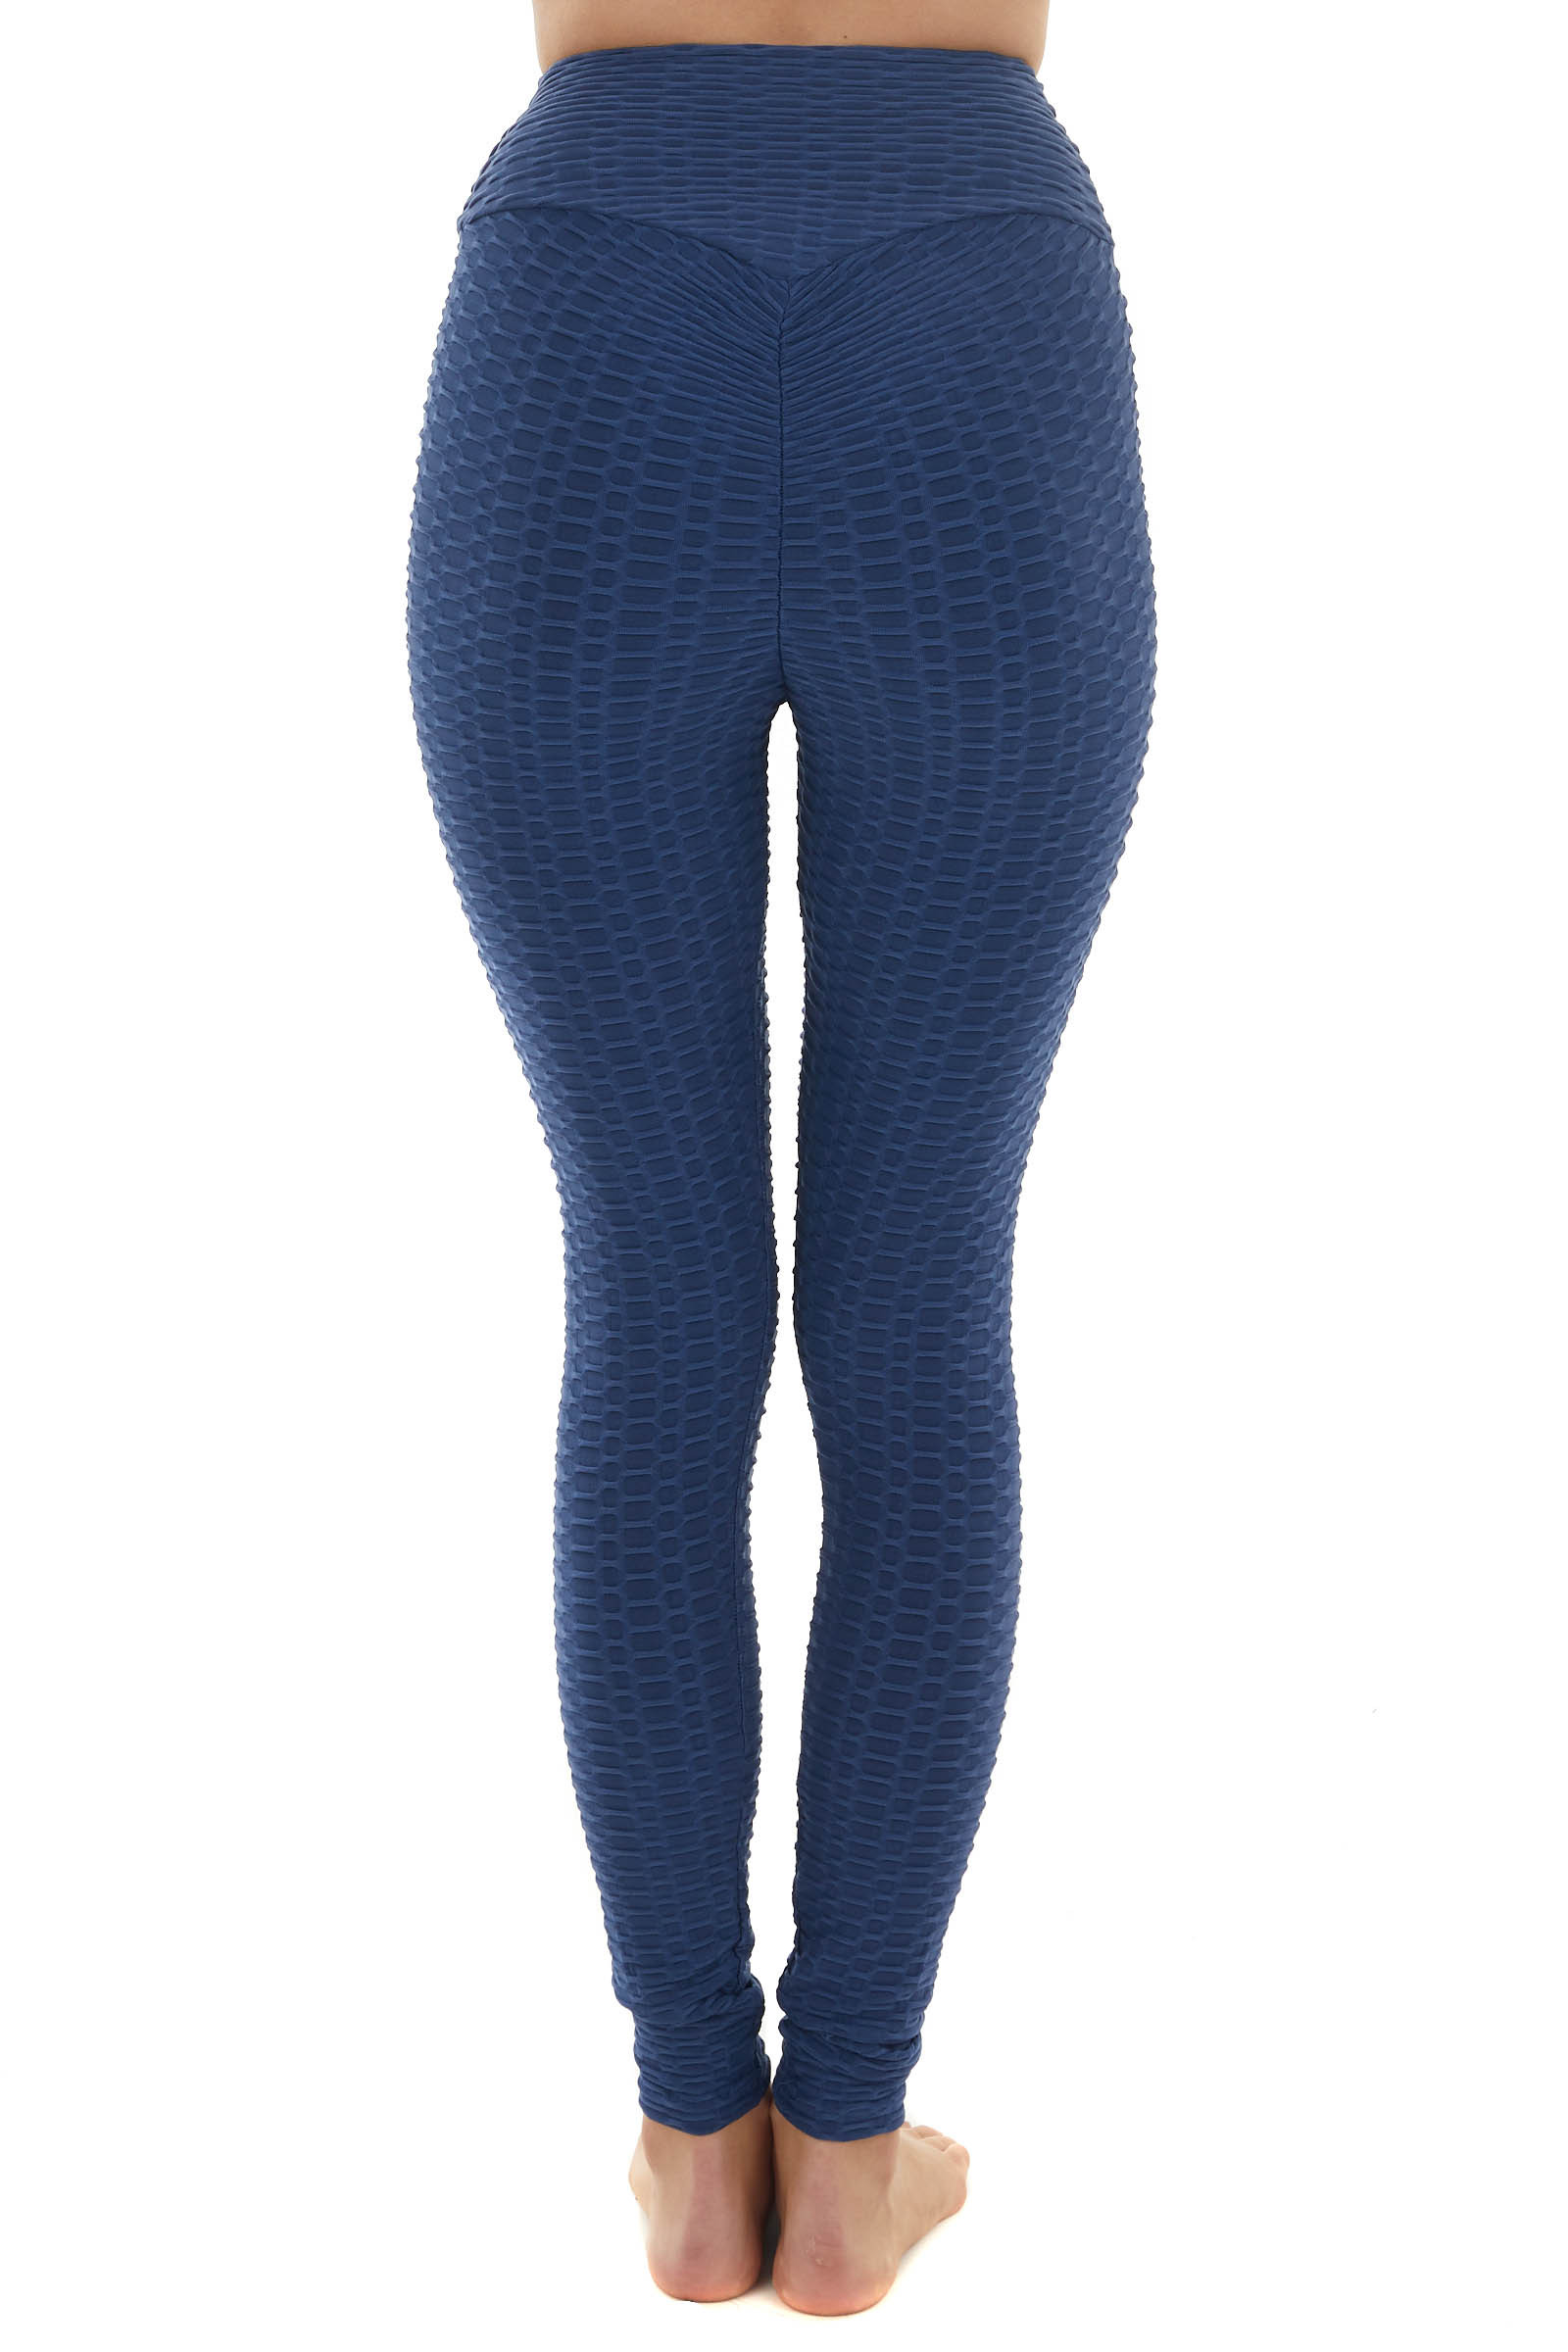 Ocean High Rise Ruched Back Textured Leggings